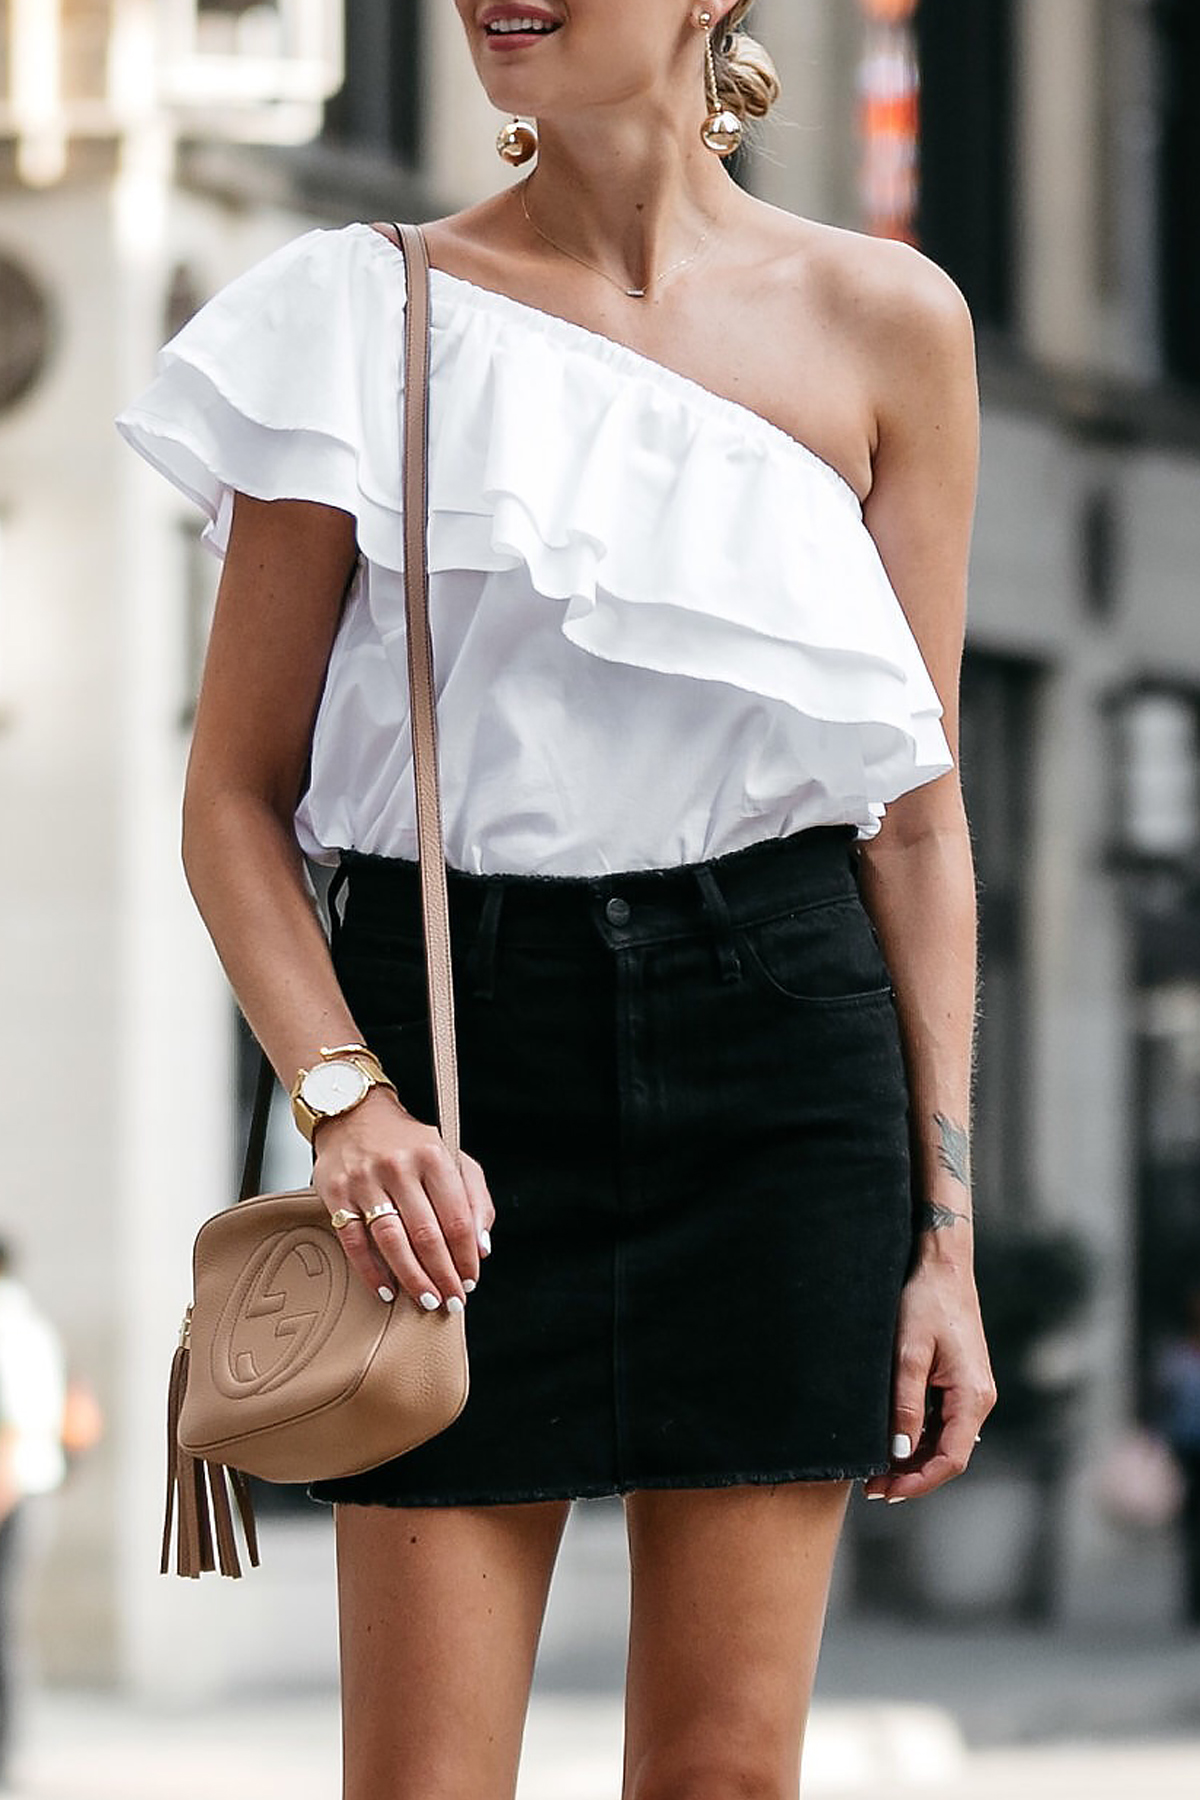 Nordstrom White One Shoulder Ruffle Top Frame Black Denim Skirt Outfit Gucci Soho Handbag Fashion Jackson Dallas Blogger Fashion Blogger Street Style